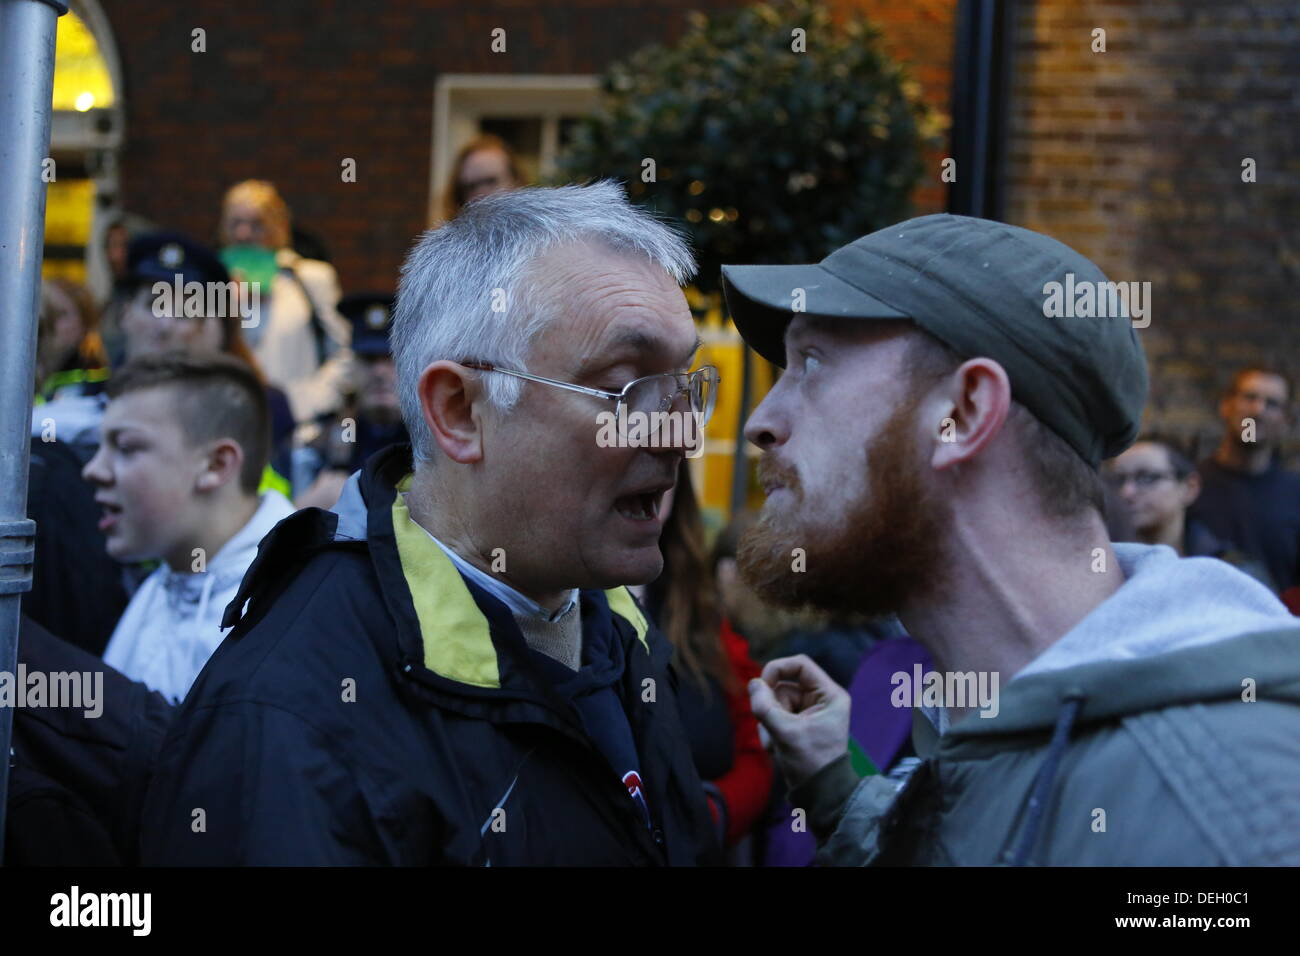 Dublin, Ireland. 18th September 2013. Kieran Allen (L) from the Socialist Workers Party and a protester (R) argue loudly, because the protester was not allowed to speak. Protesters hold a People's Assembly outside the Dail (Irish Parliament), to discuss austerity in smaller groups. The assembly was part of a day of protests to coincide with the return of the TDs (Members of Parliament) from their summer break. Credit:  Michael Debets/Alamy Live News - Stock Image